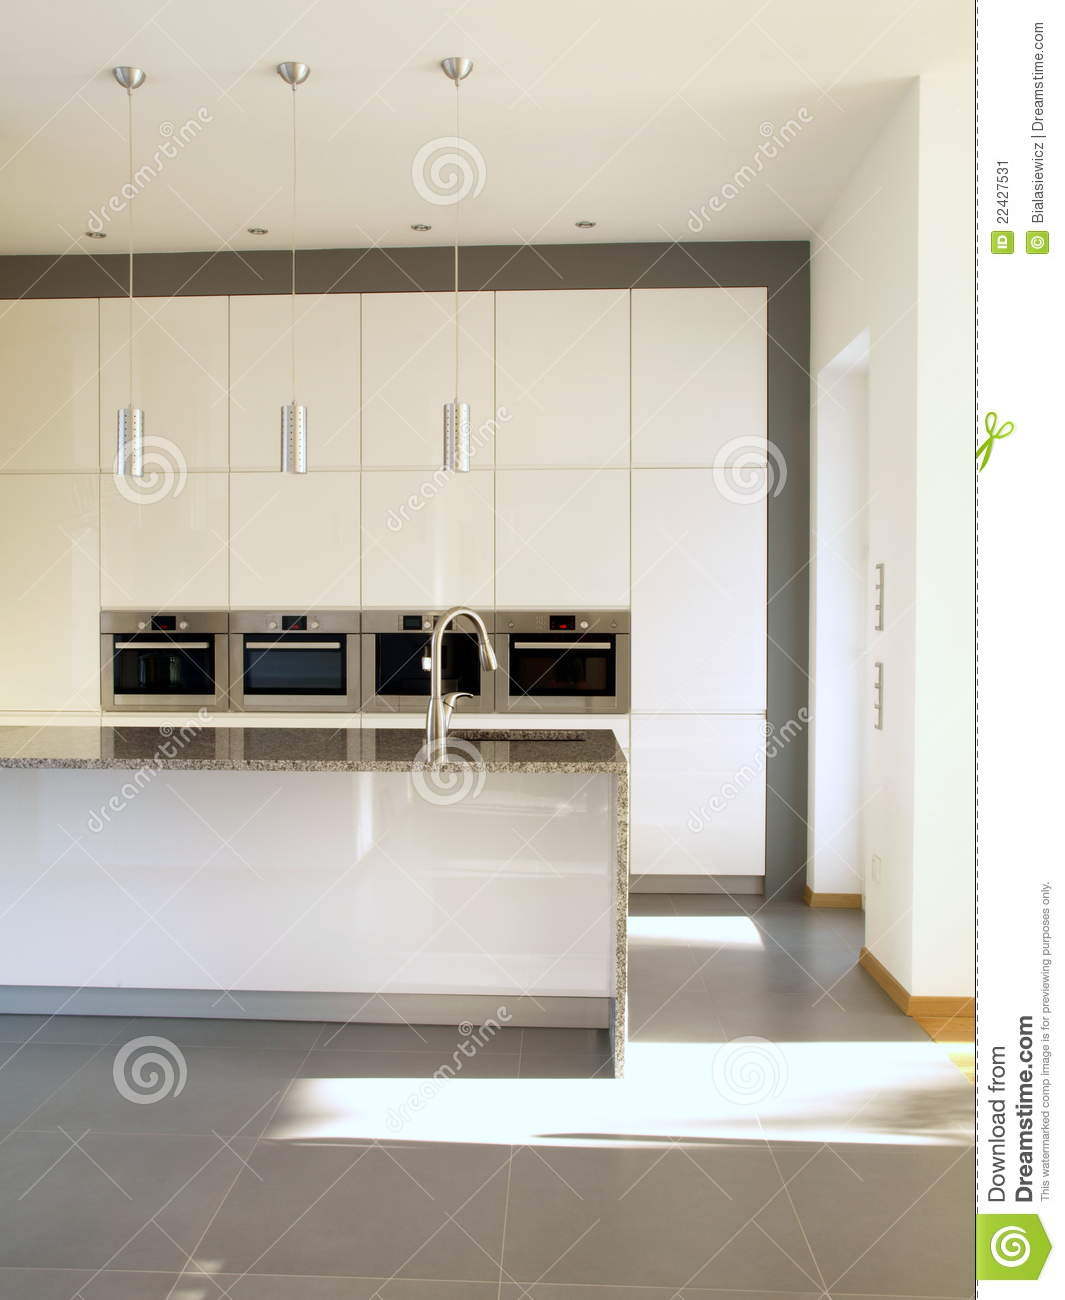 cuisine minimaliste moderne dans le blanc image stock image 22427531. Black Bedroom Furniture Sets. Home Design Ideas